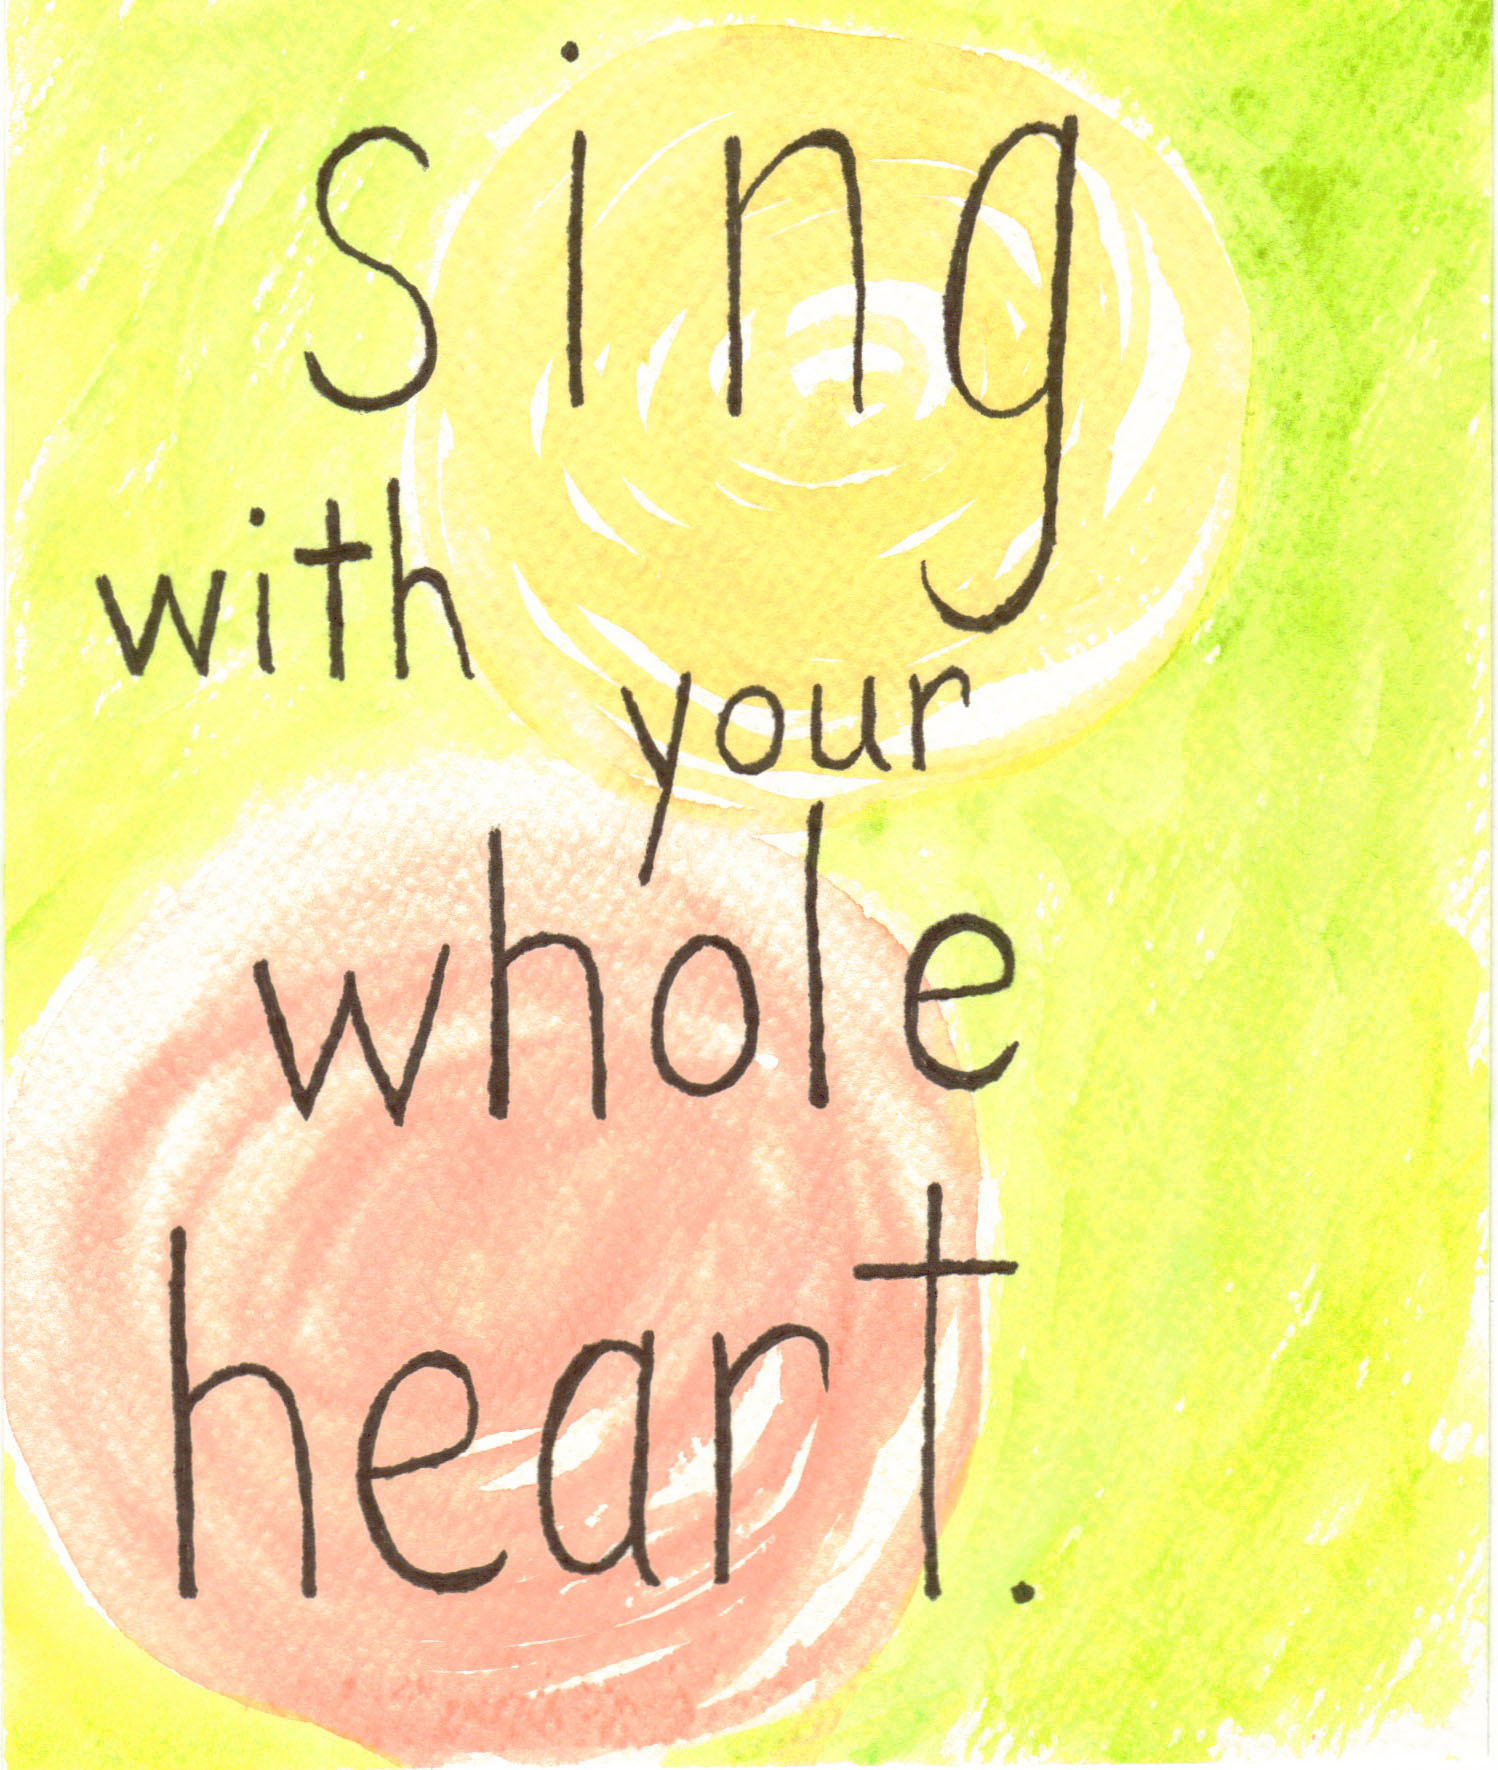 sing your whole heart a few personal aspirations bent sing your whole heart aspirations by com